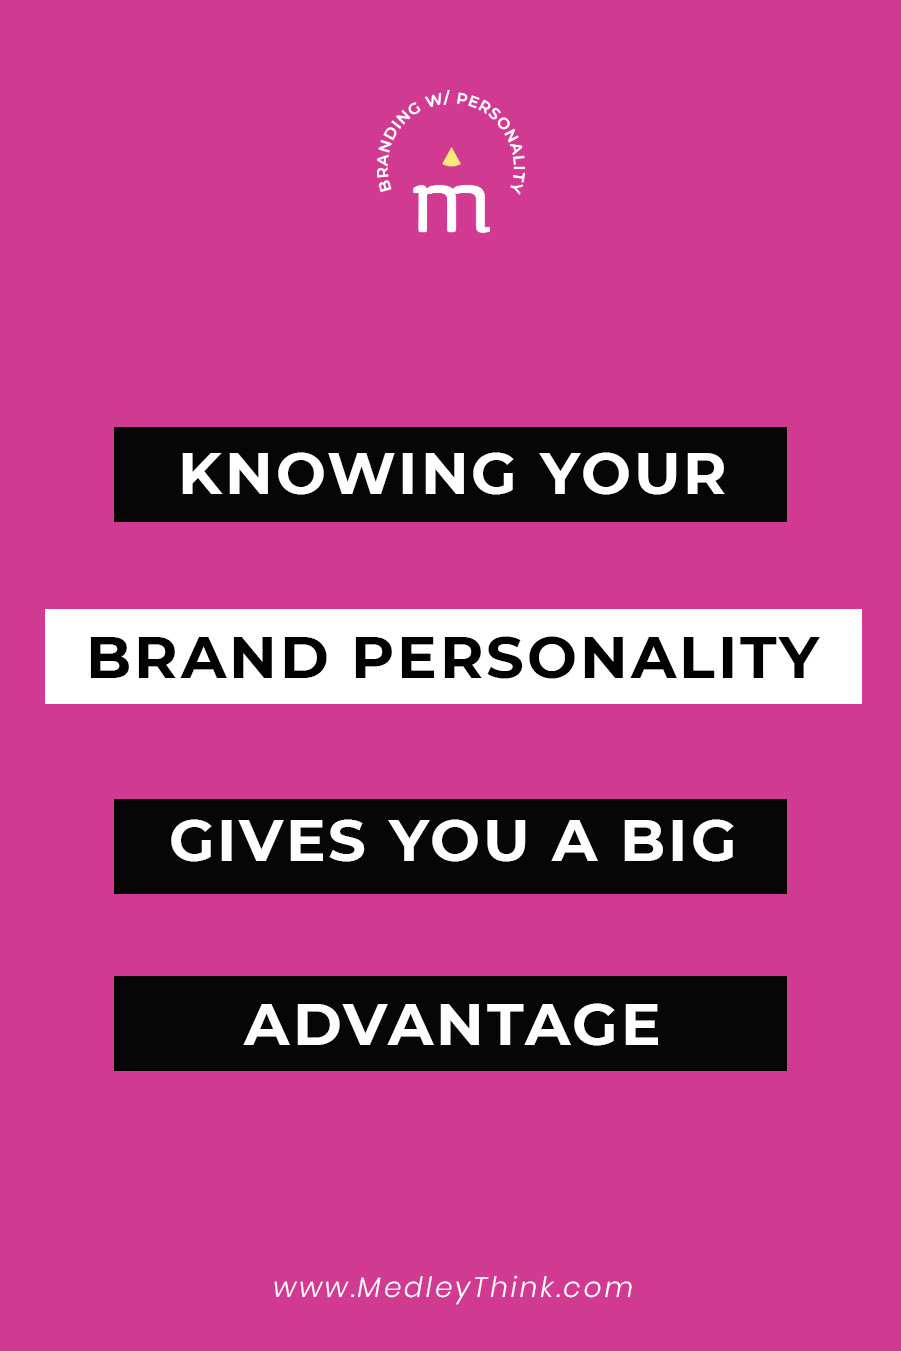 We are looking for some magical marketing strategy that will bring us more sales while forgetting about why people buy in the first place. What attracts them is your BRAND PERSONALITY. The friendly face that resonates with people. The connection that builds relationships. Discover yours without personality quiz. #branding #brandpersonality #brand #brandarchetypes #medleythink